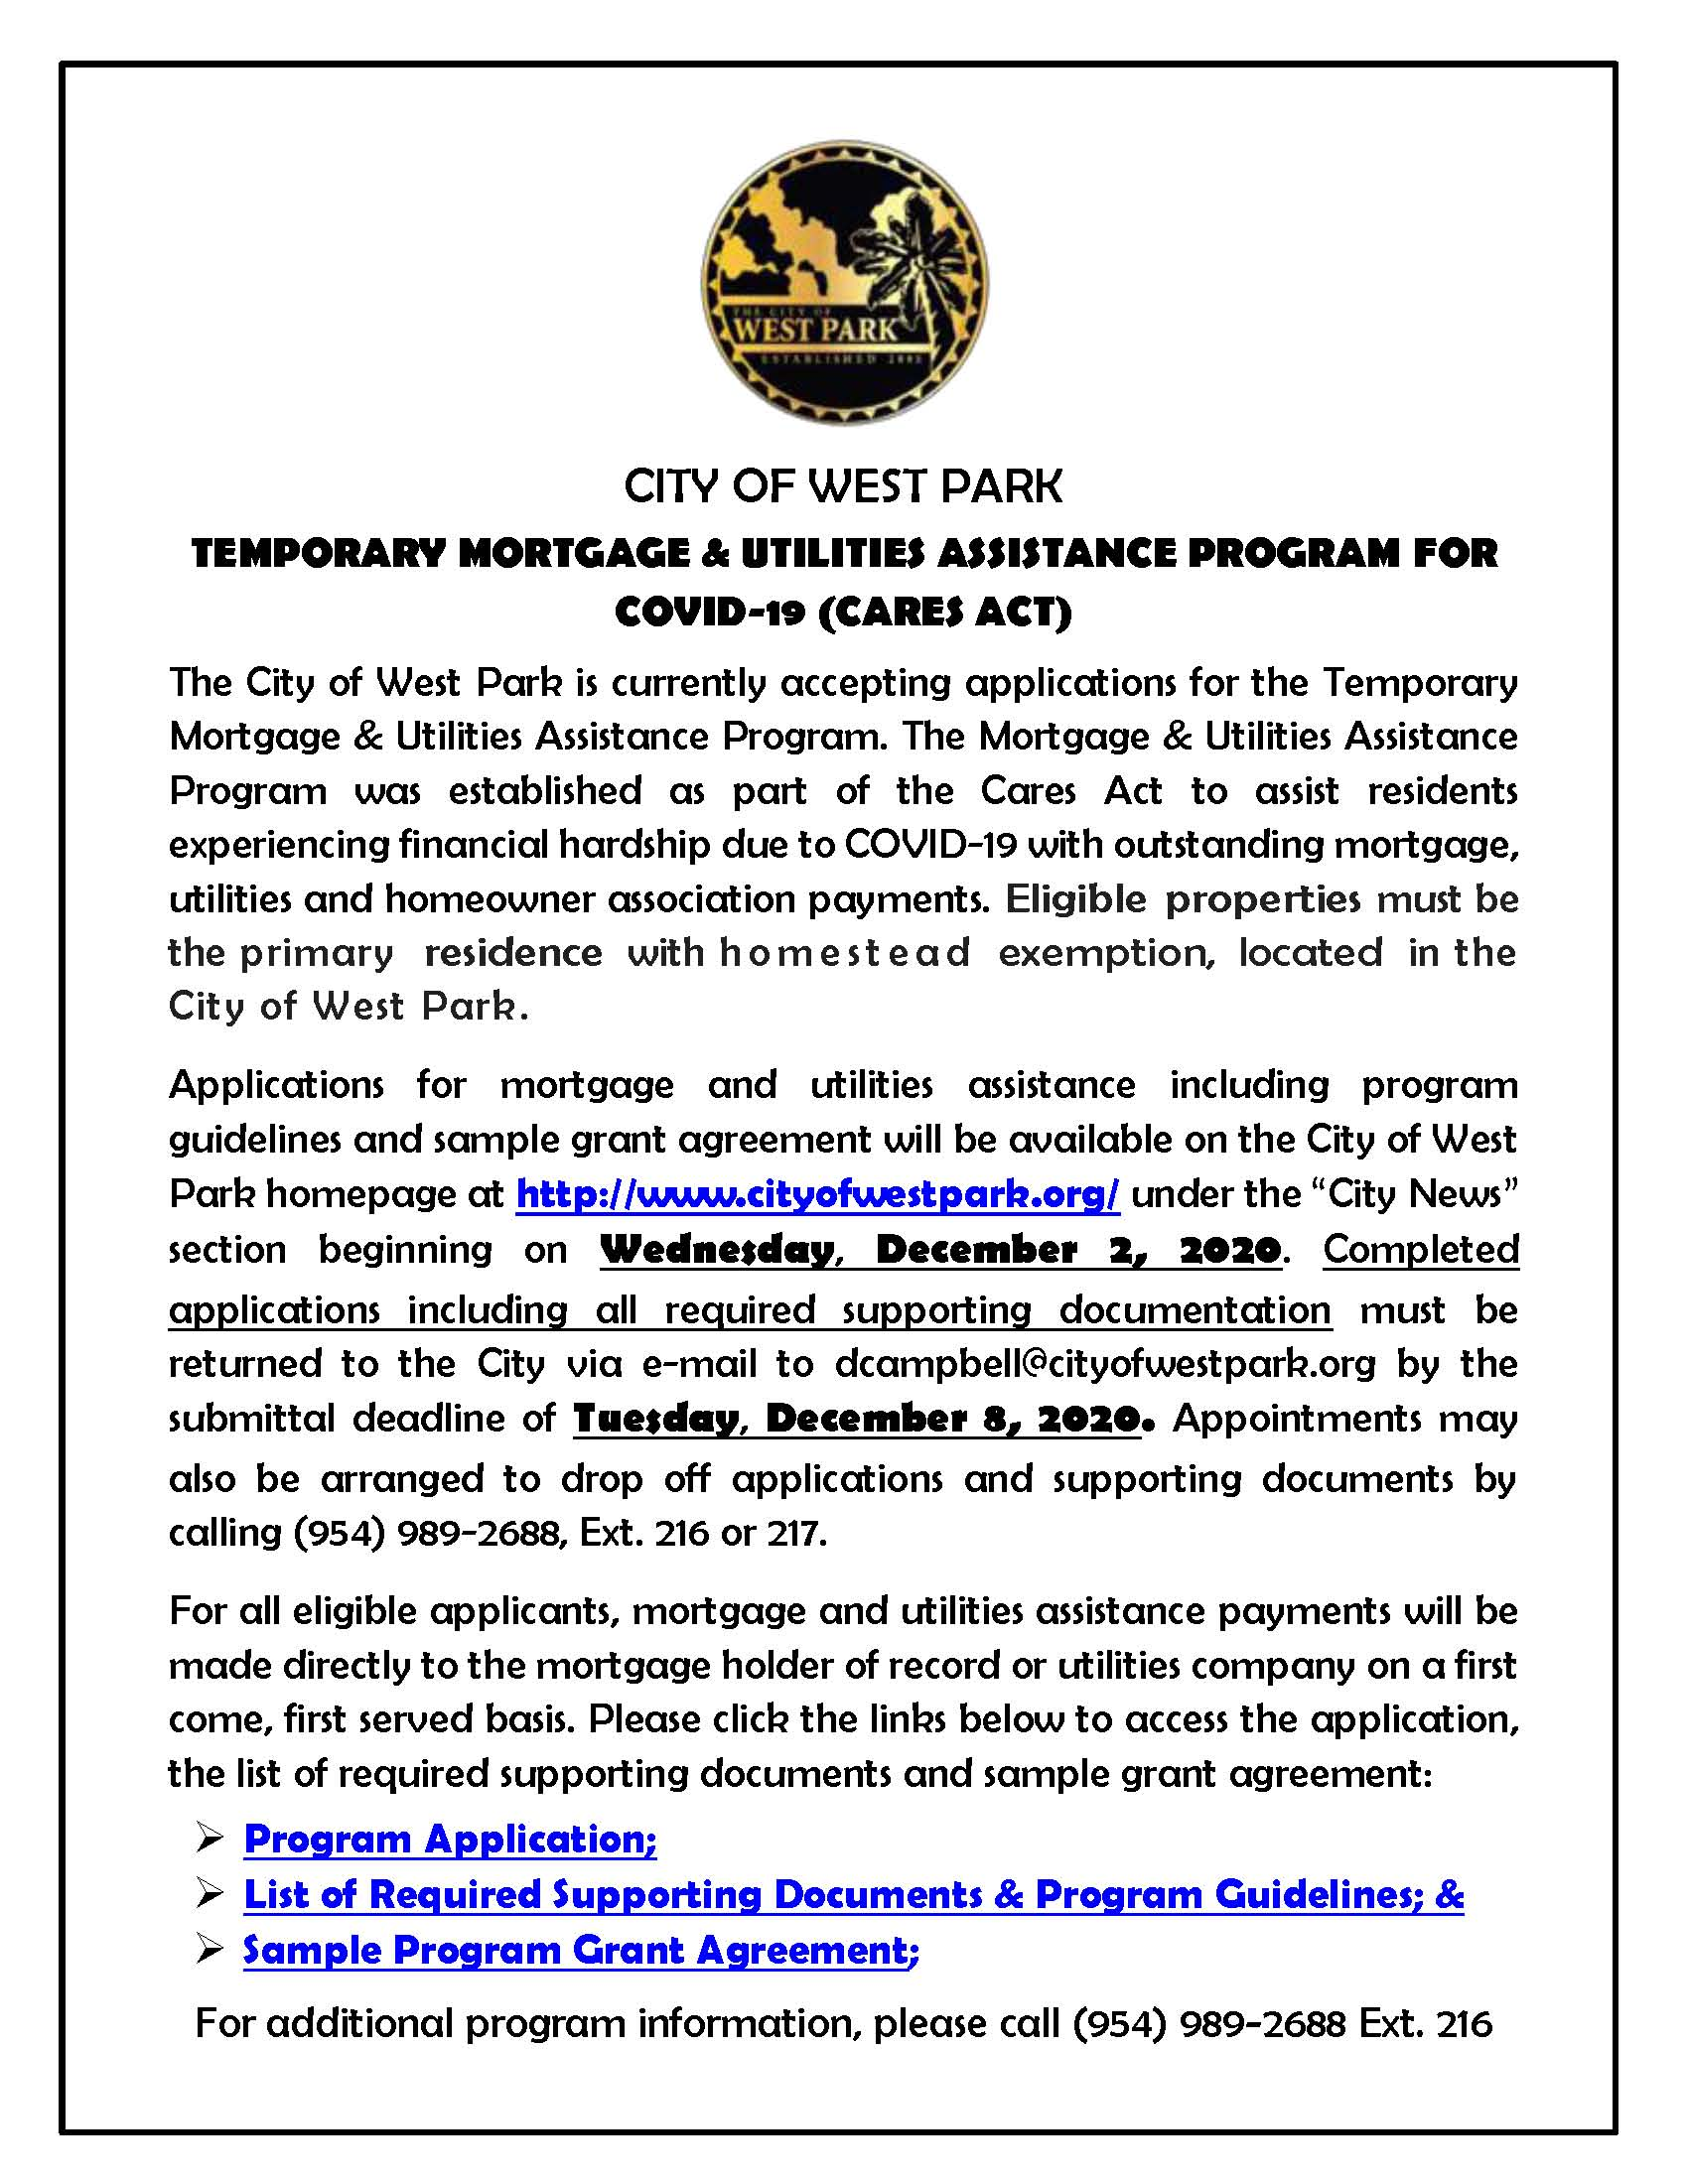 CARES ACT FLYER (2) - Temporary Mortgage  Utilities Assistance Program Notice - 11-2020